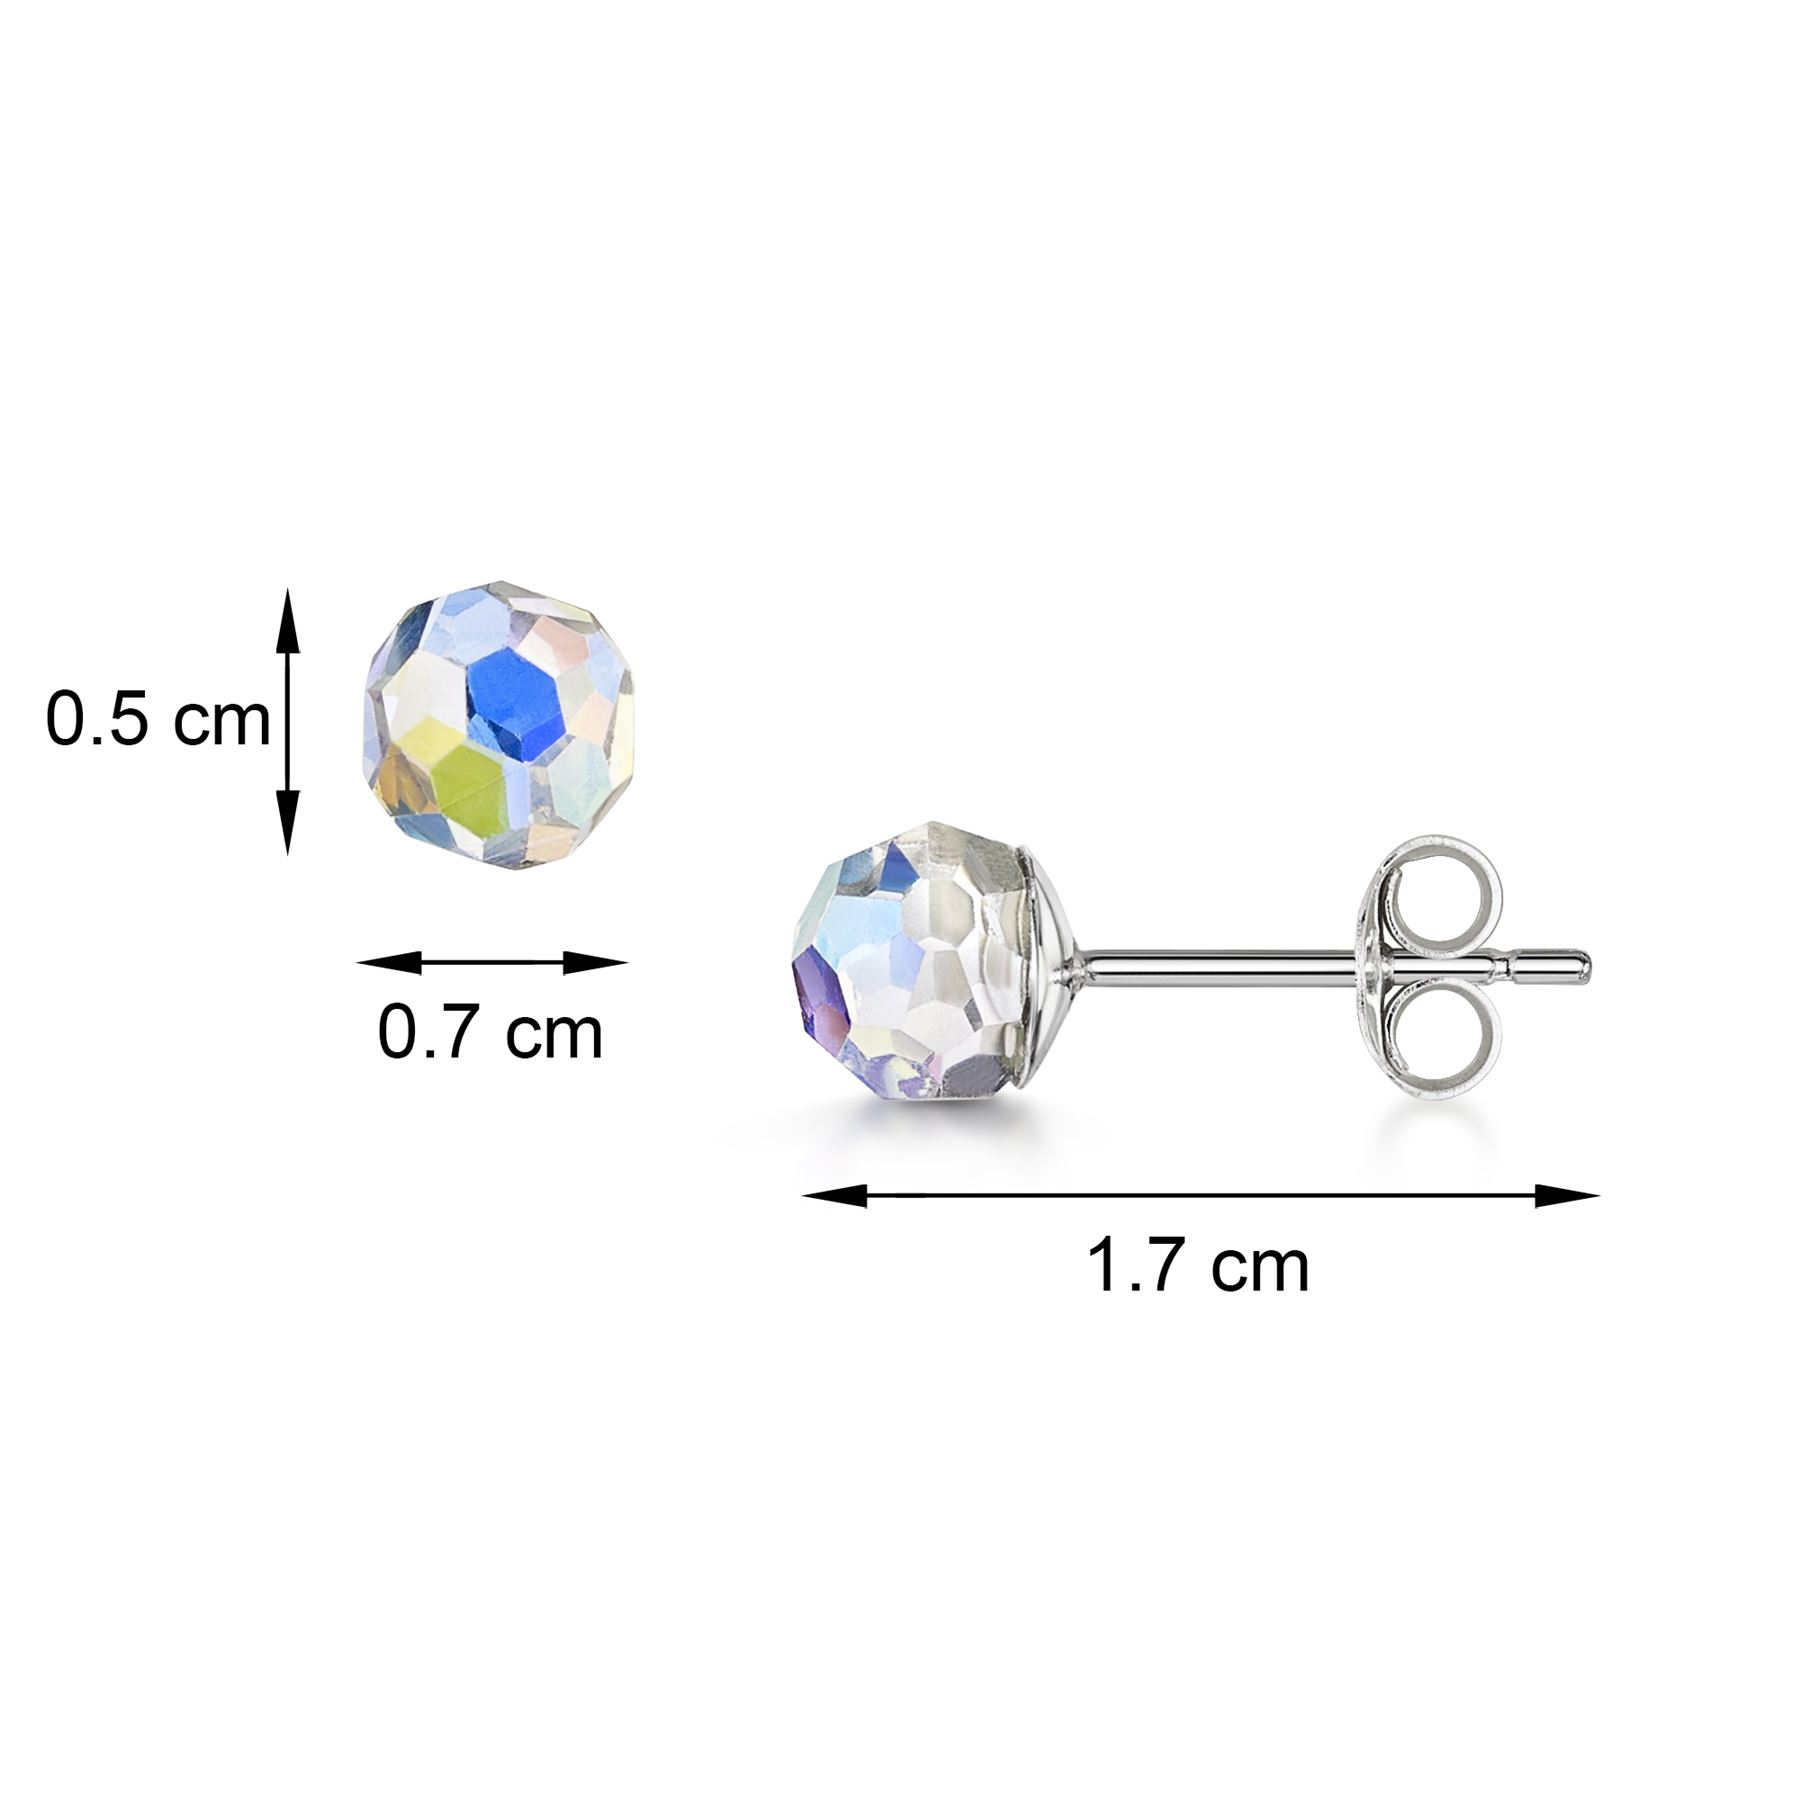 Amberta-925-Sterling-Silver-Earrings-Pair-of-Studs-for-Women-with-5-mm-Gemstones thumbnail 12